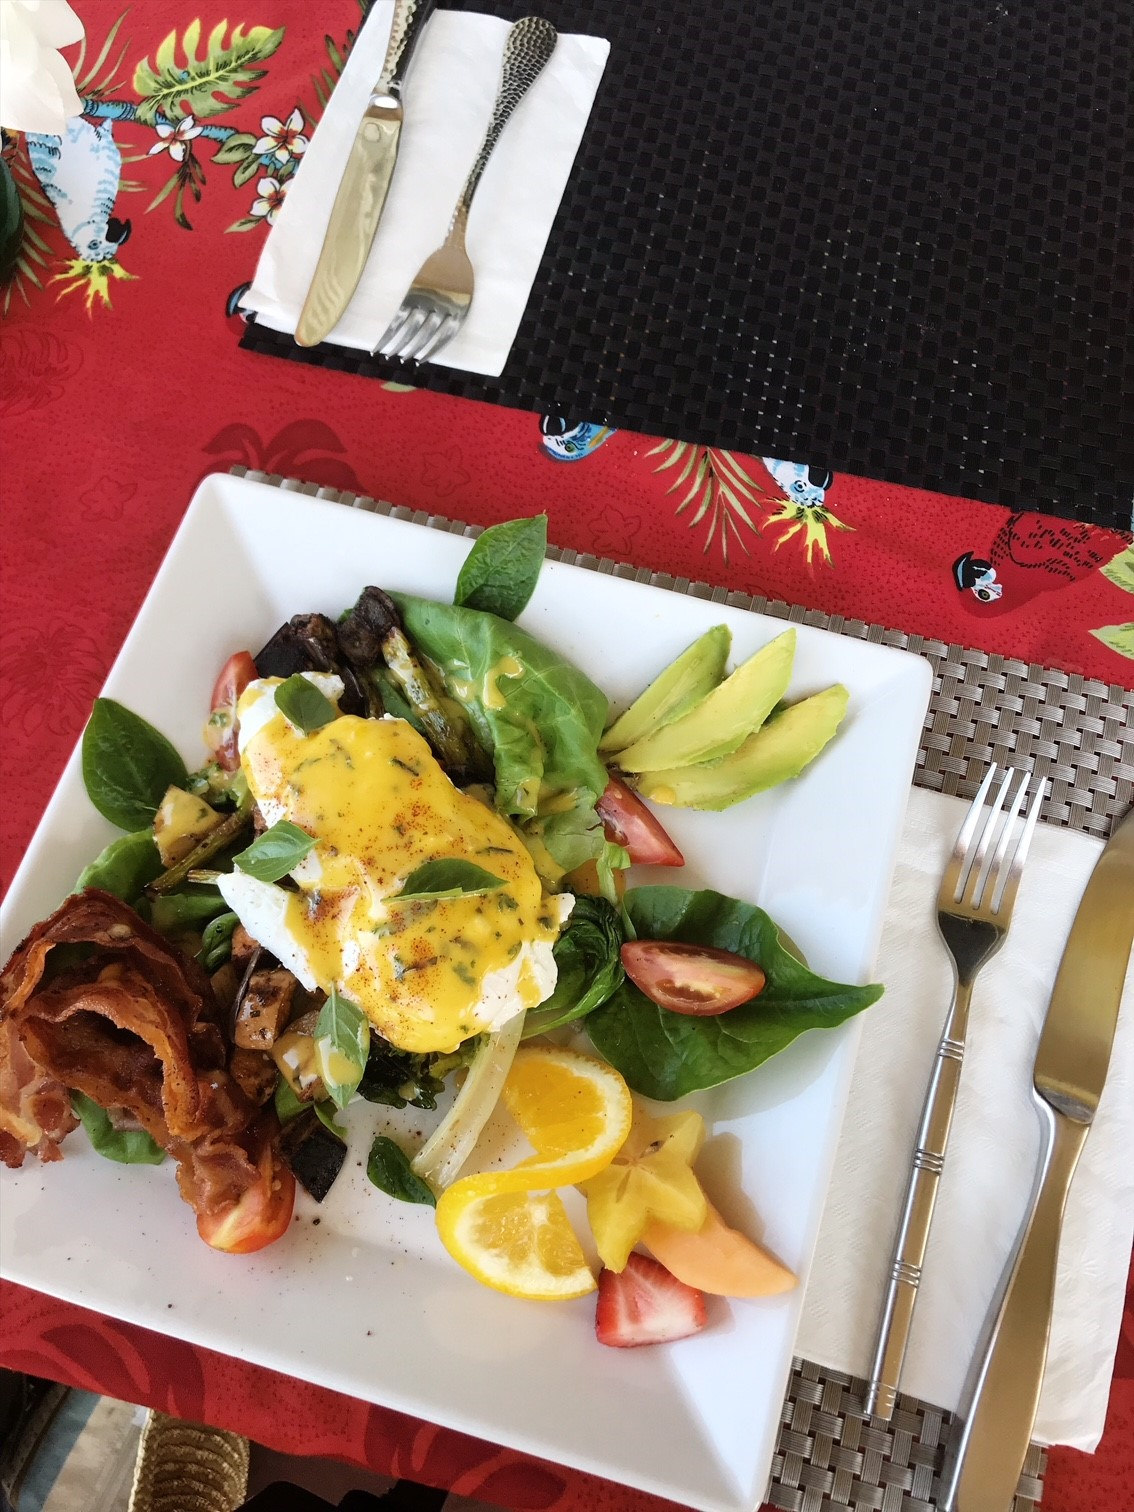 Brunch at Captain's Kitchen BVI - Farm fresh and delicious dishes